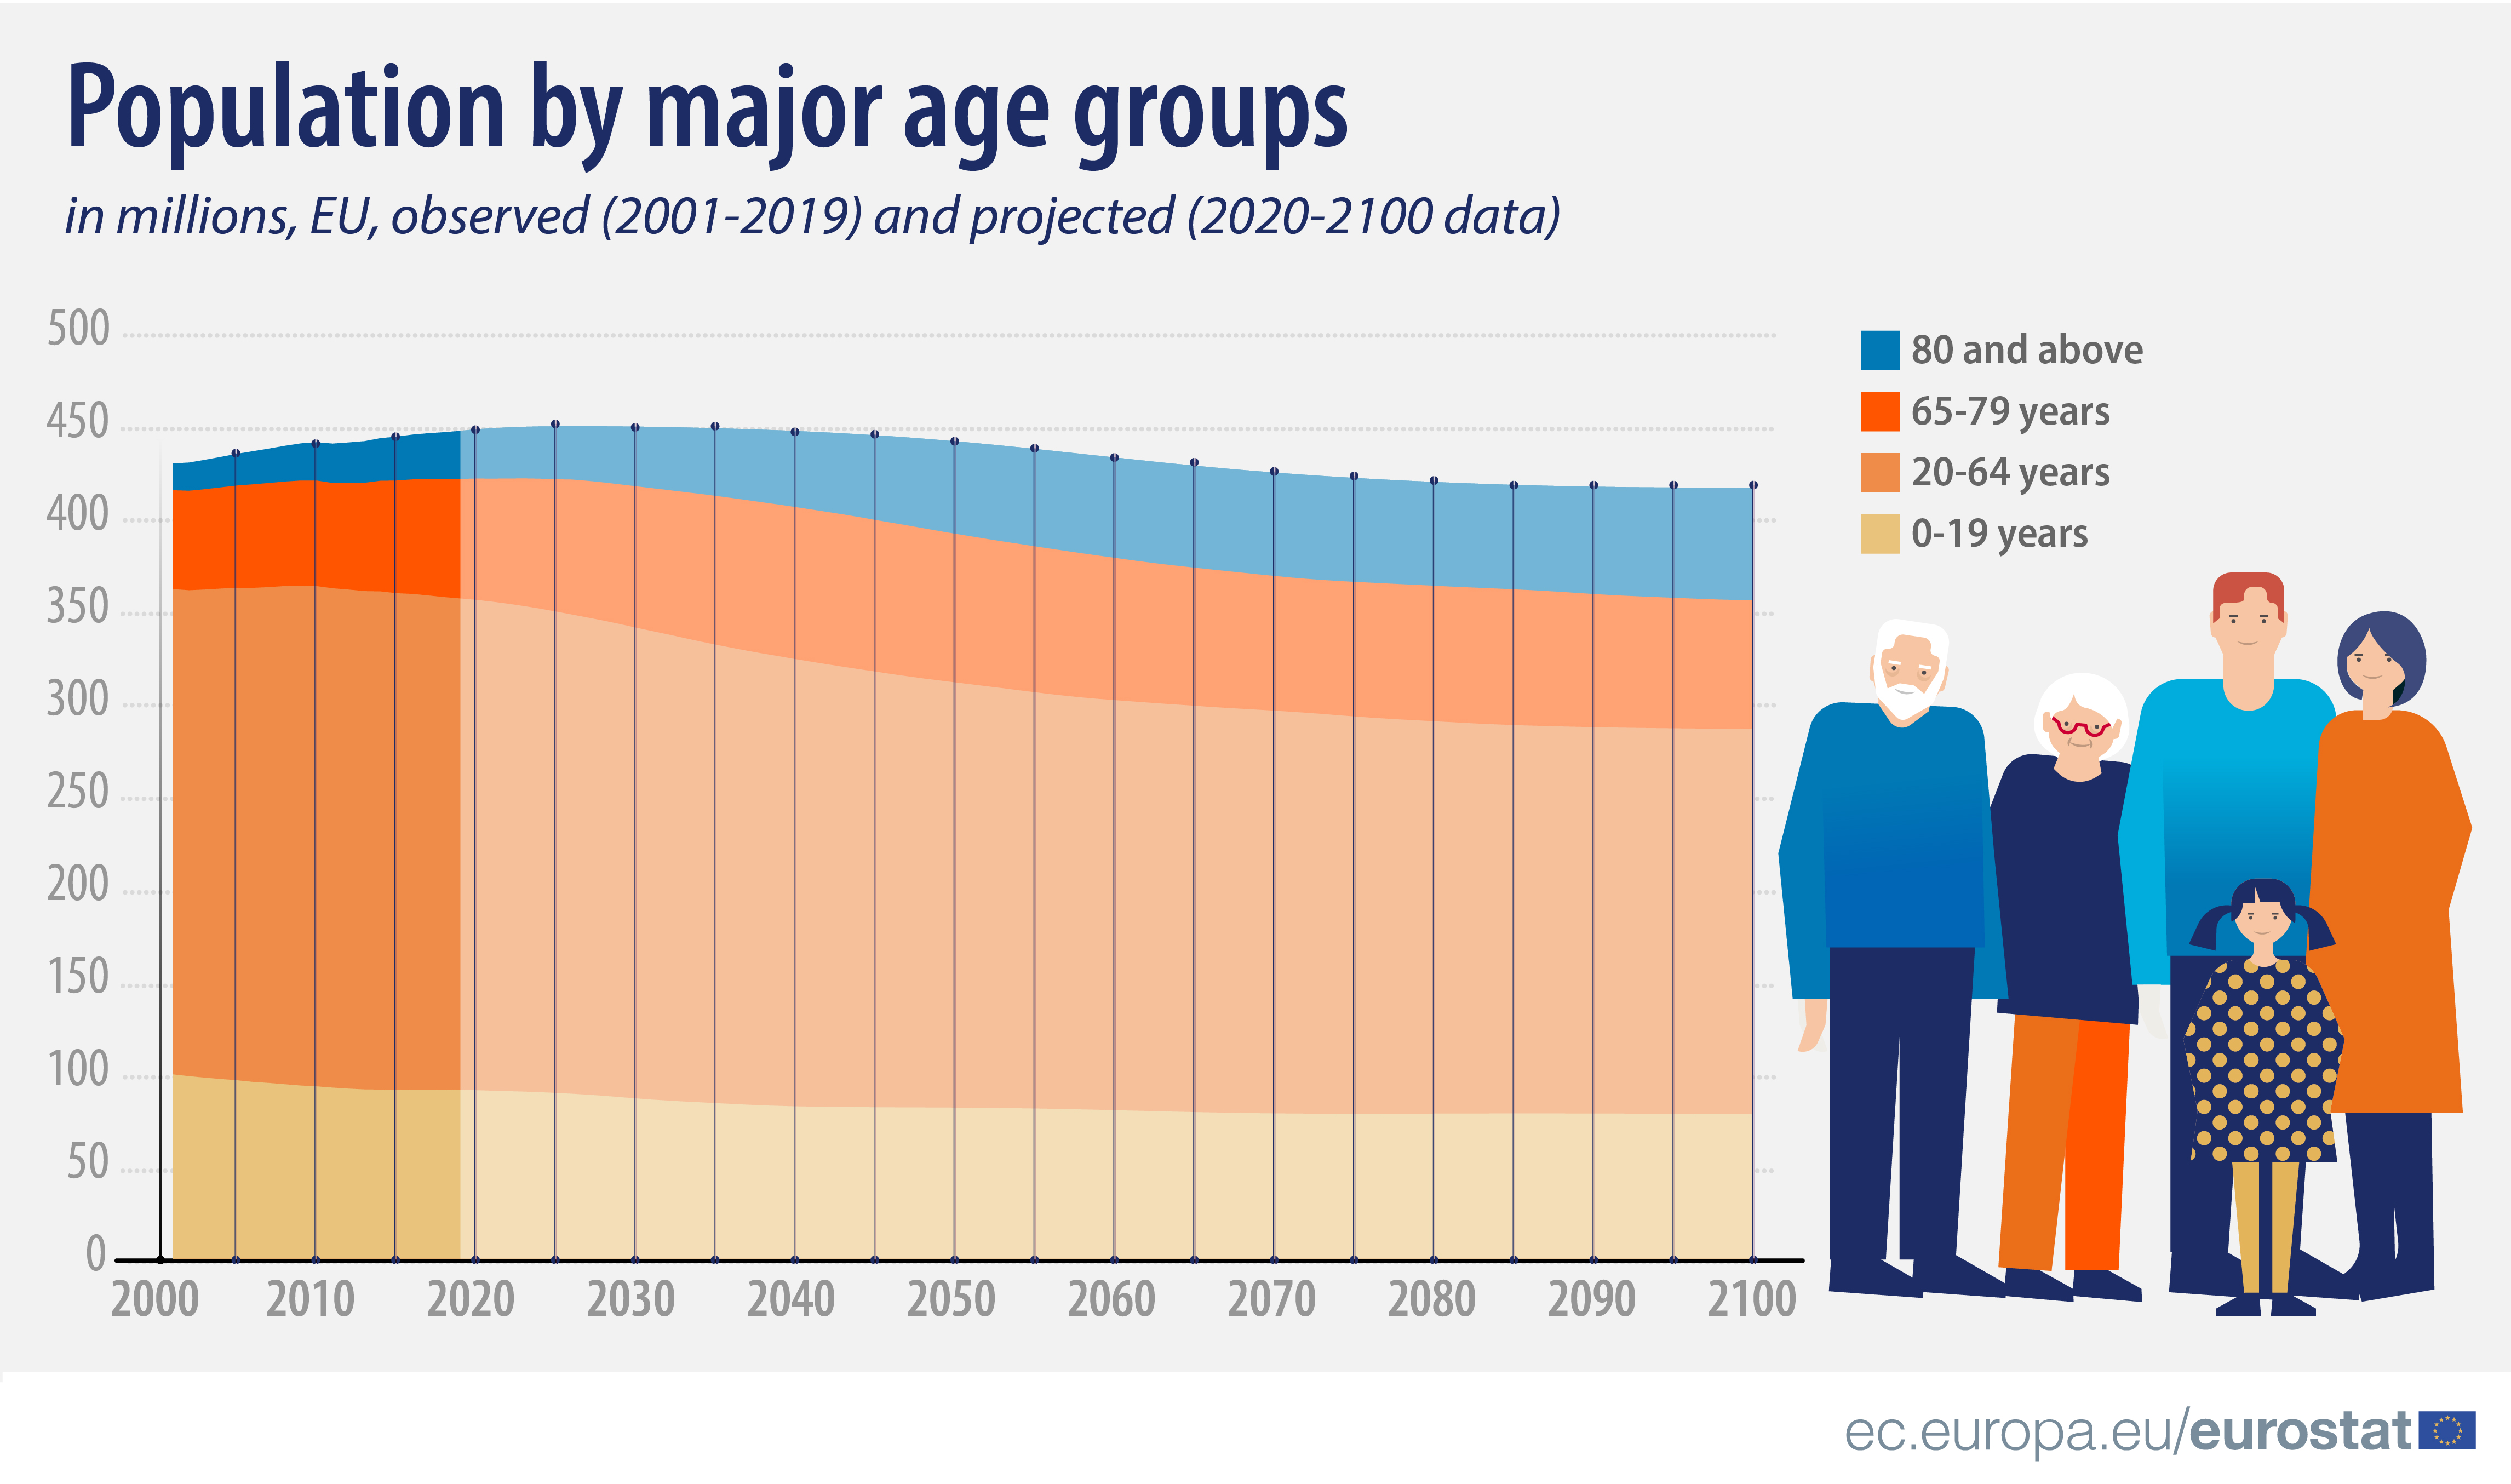 Population by major age groups